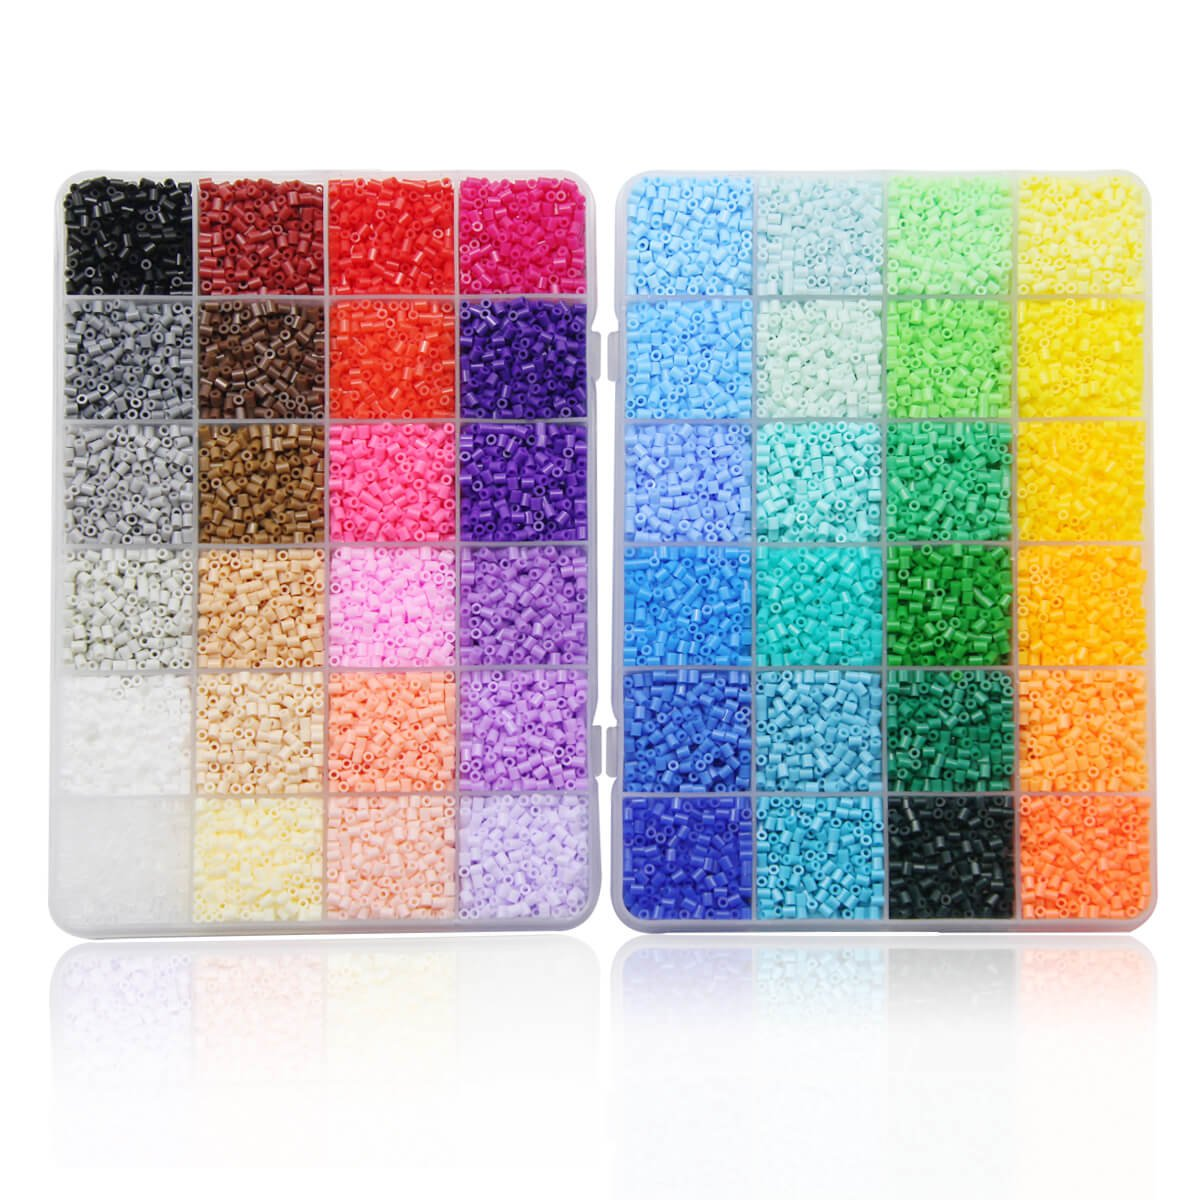 24.000 Canutillos Mini Hama Beads 2.6mm (48 Colores) Xsr